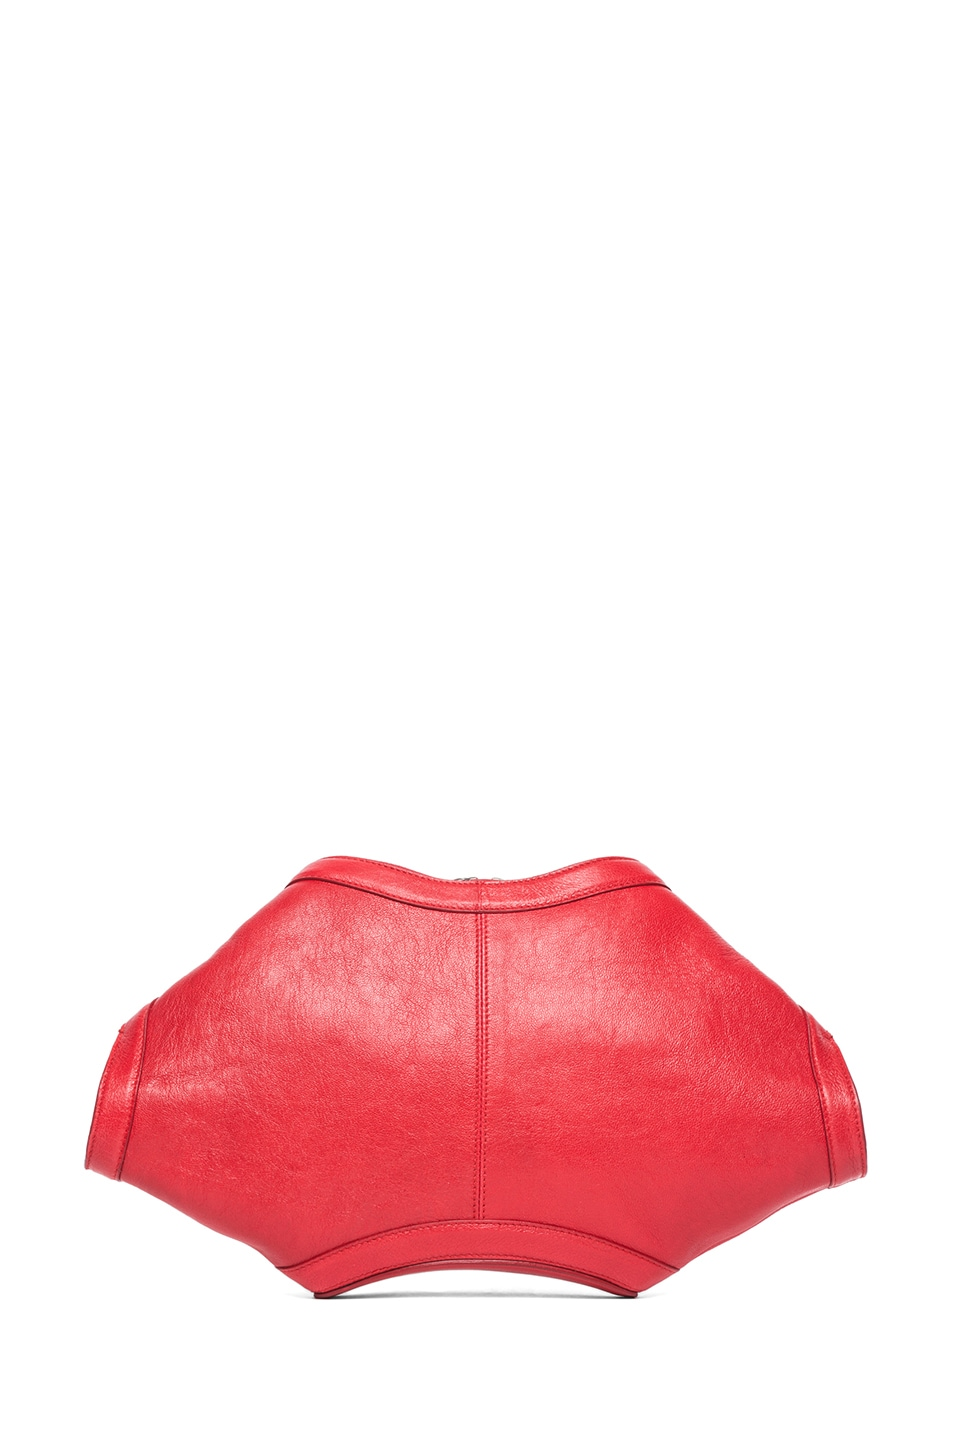 Image 2 of Alexander McQueen De Manta Clutch in Shiny Red